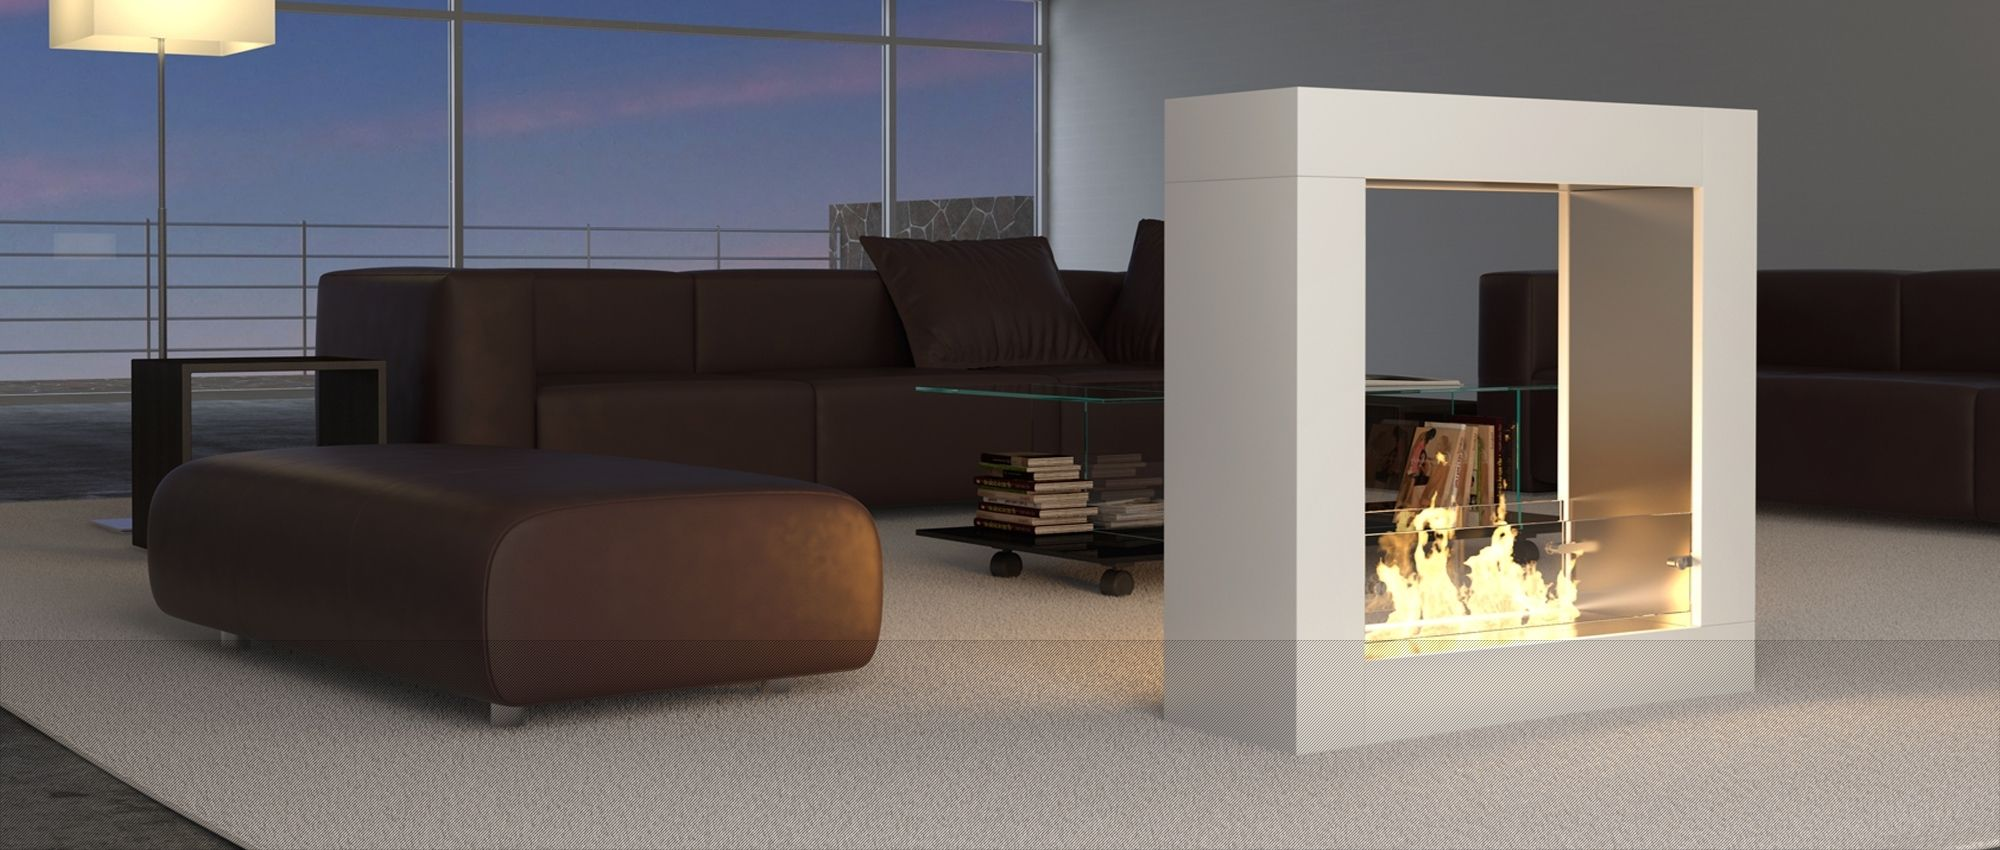 contemporary design with decoflame® sydney, floor model | burning, Wohnzimmer dekoo